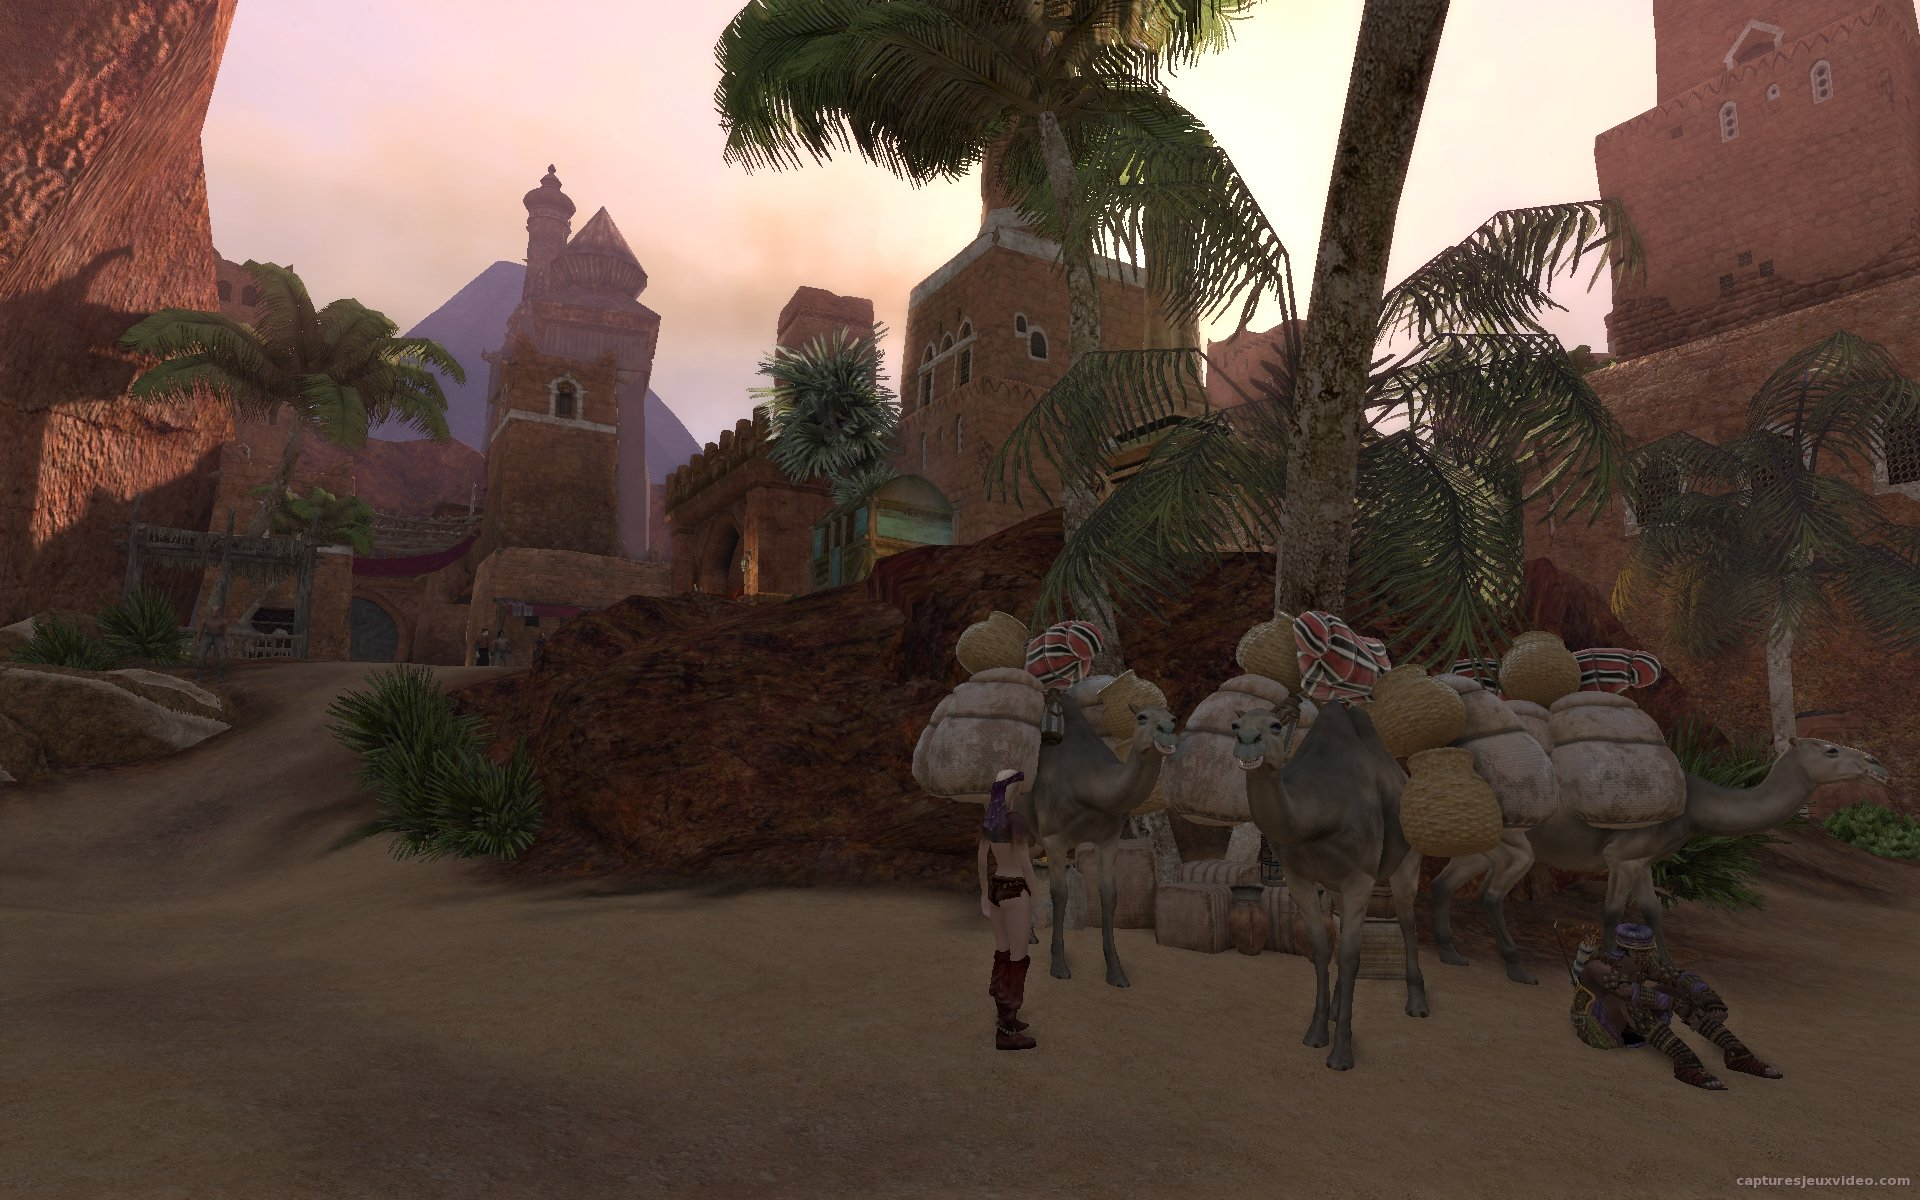 age of conan unchained nouveau khemi screenshot 0014